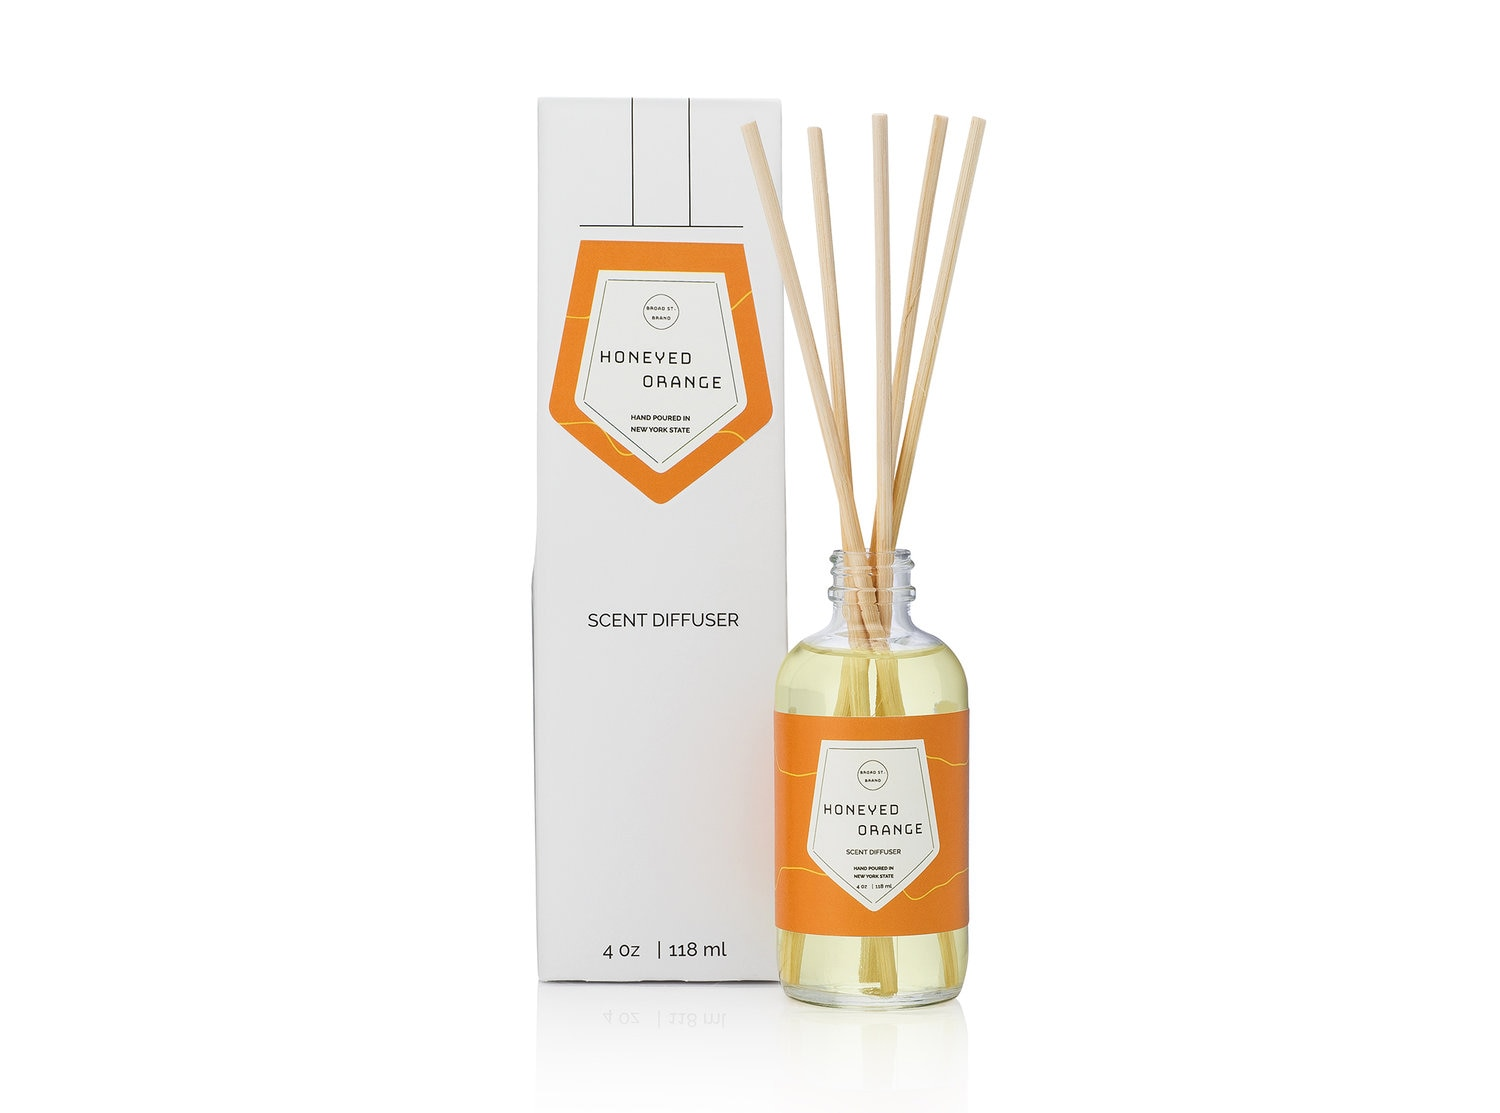 Kobo Honeyed Orange Room Diffuser